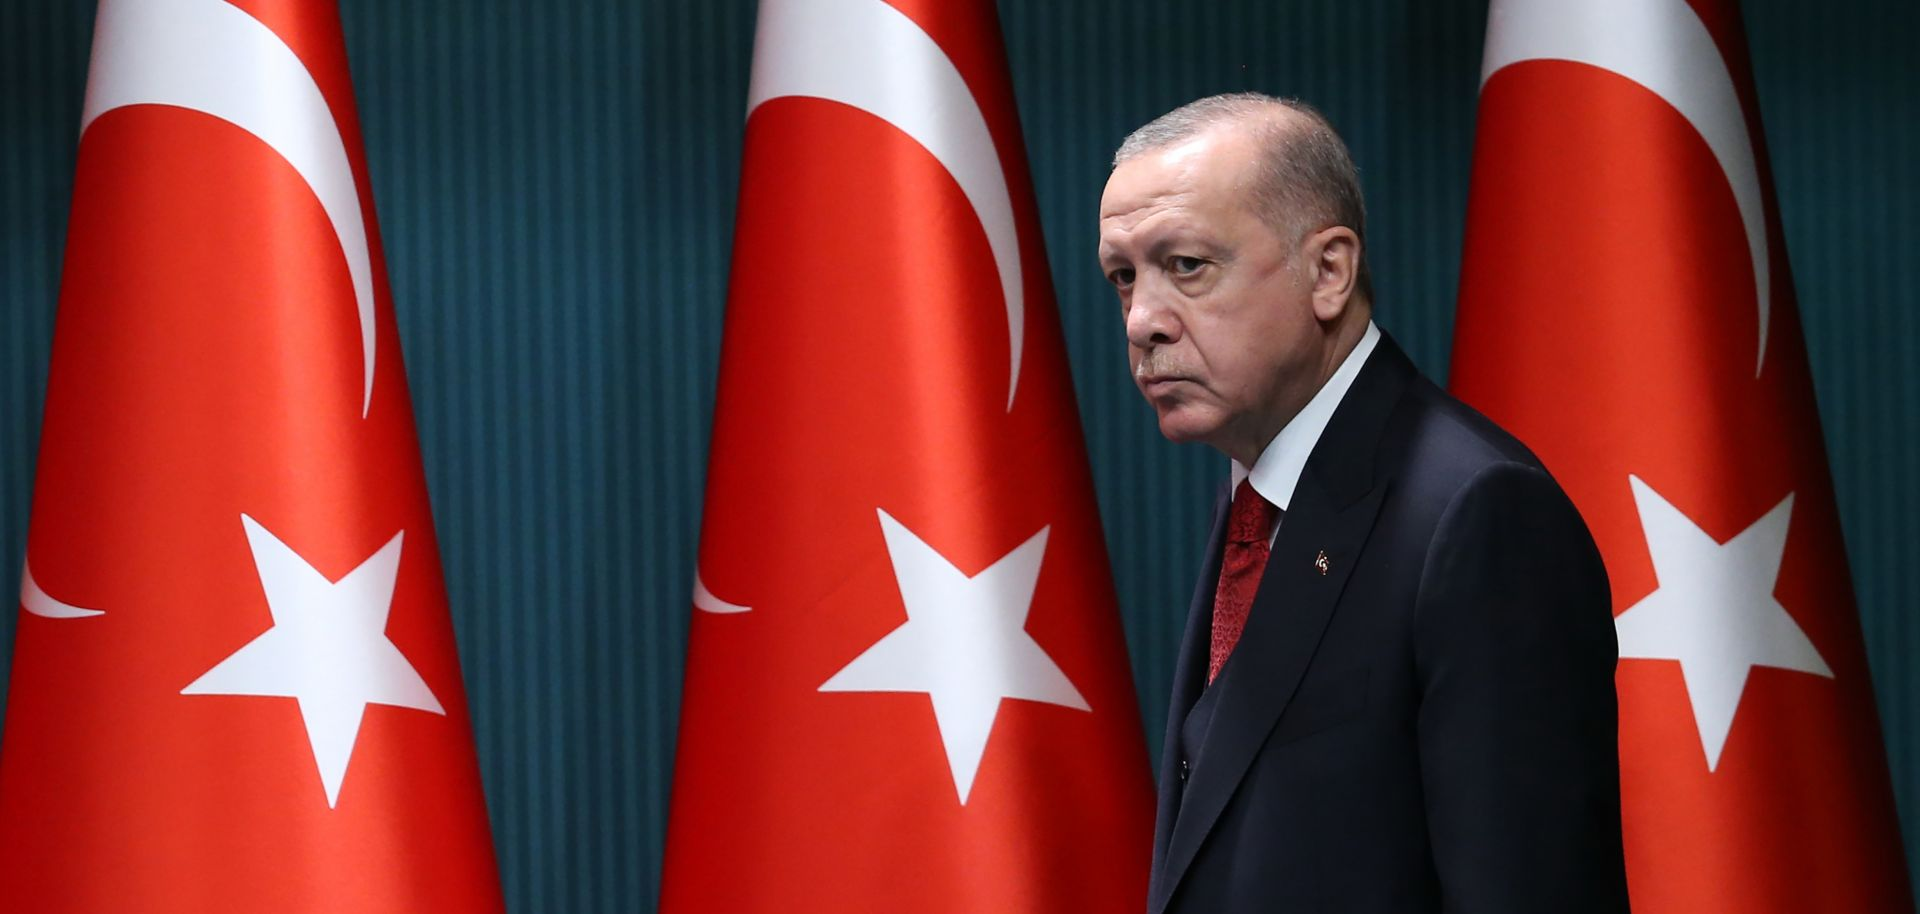 Turkish President Recep Tayyip Erdogan arrives to give a press conference in Ankara on Sept. 21, 2020.